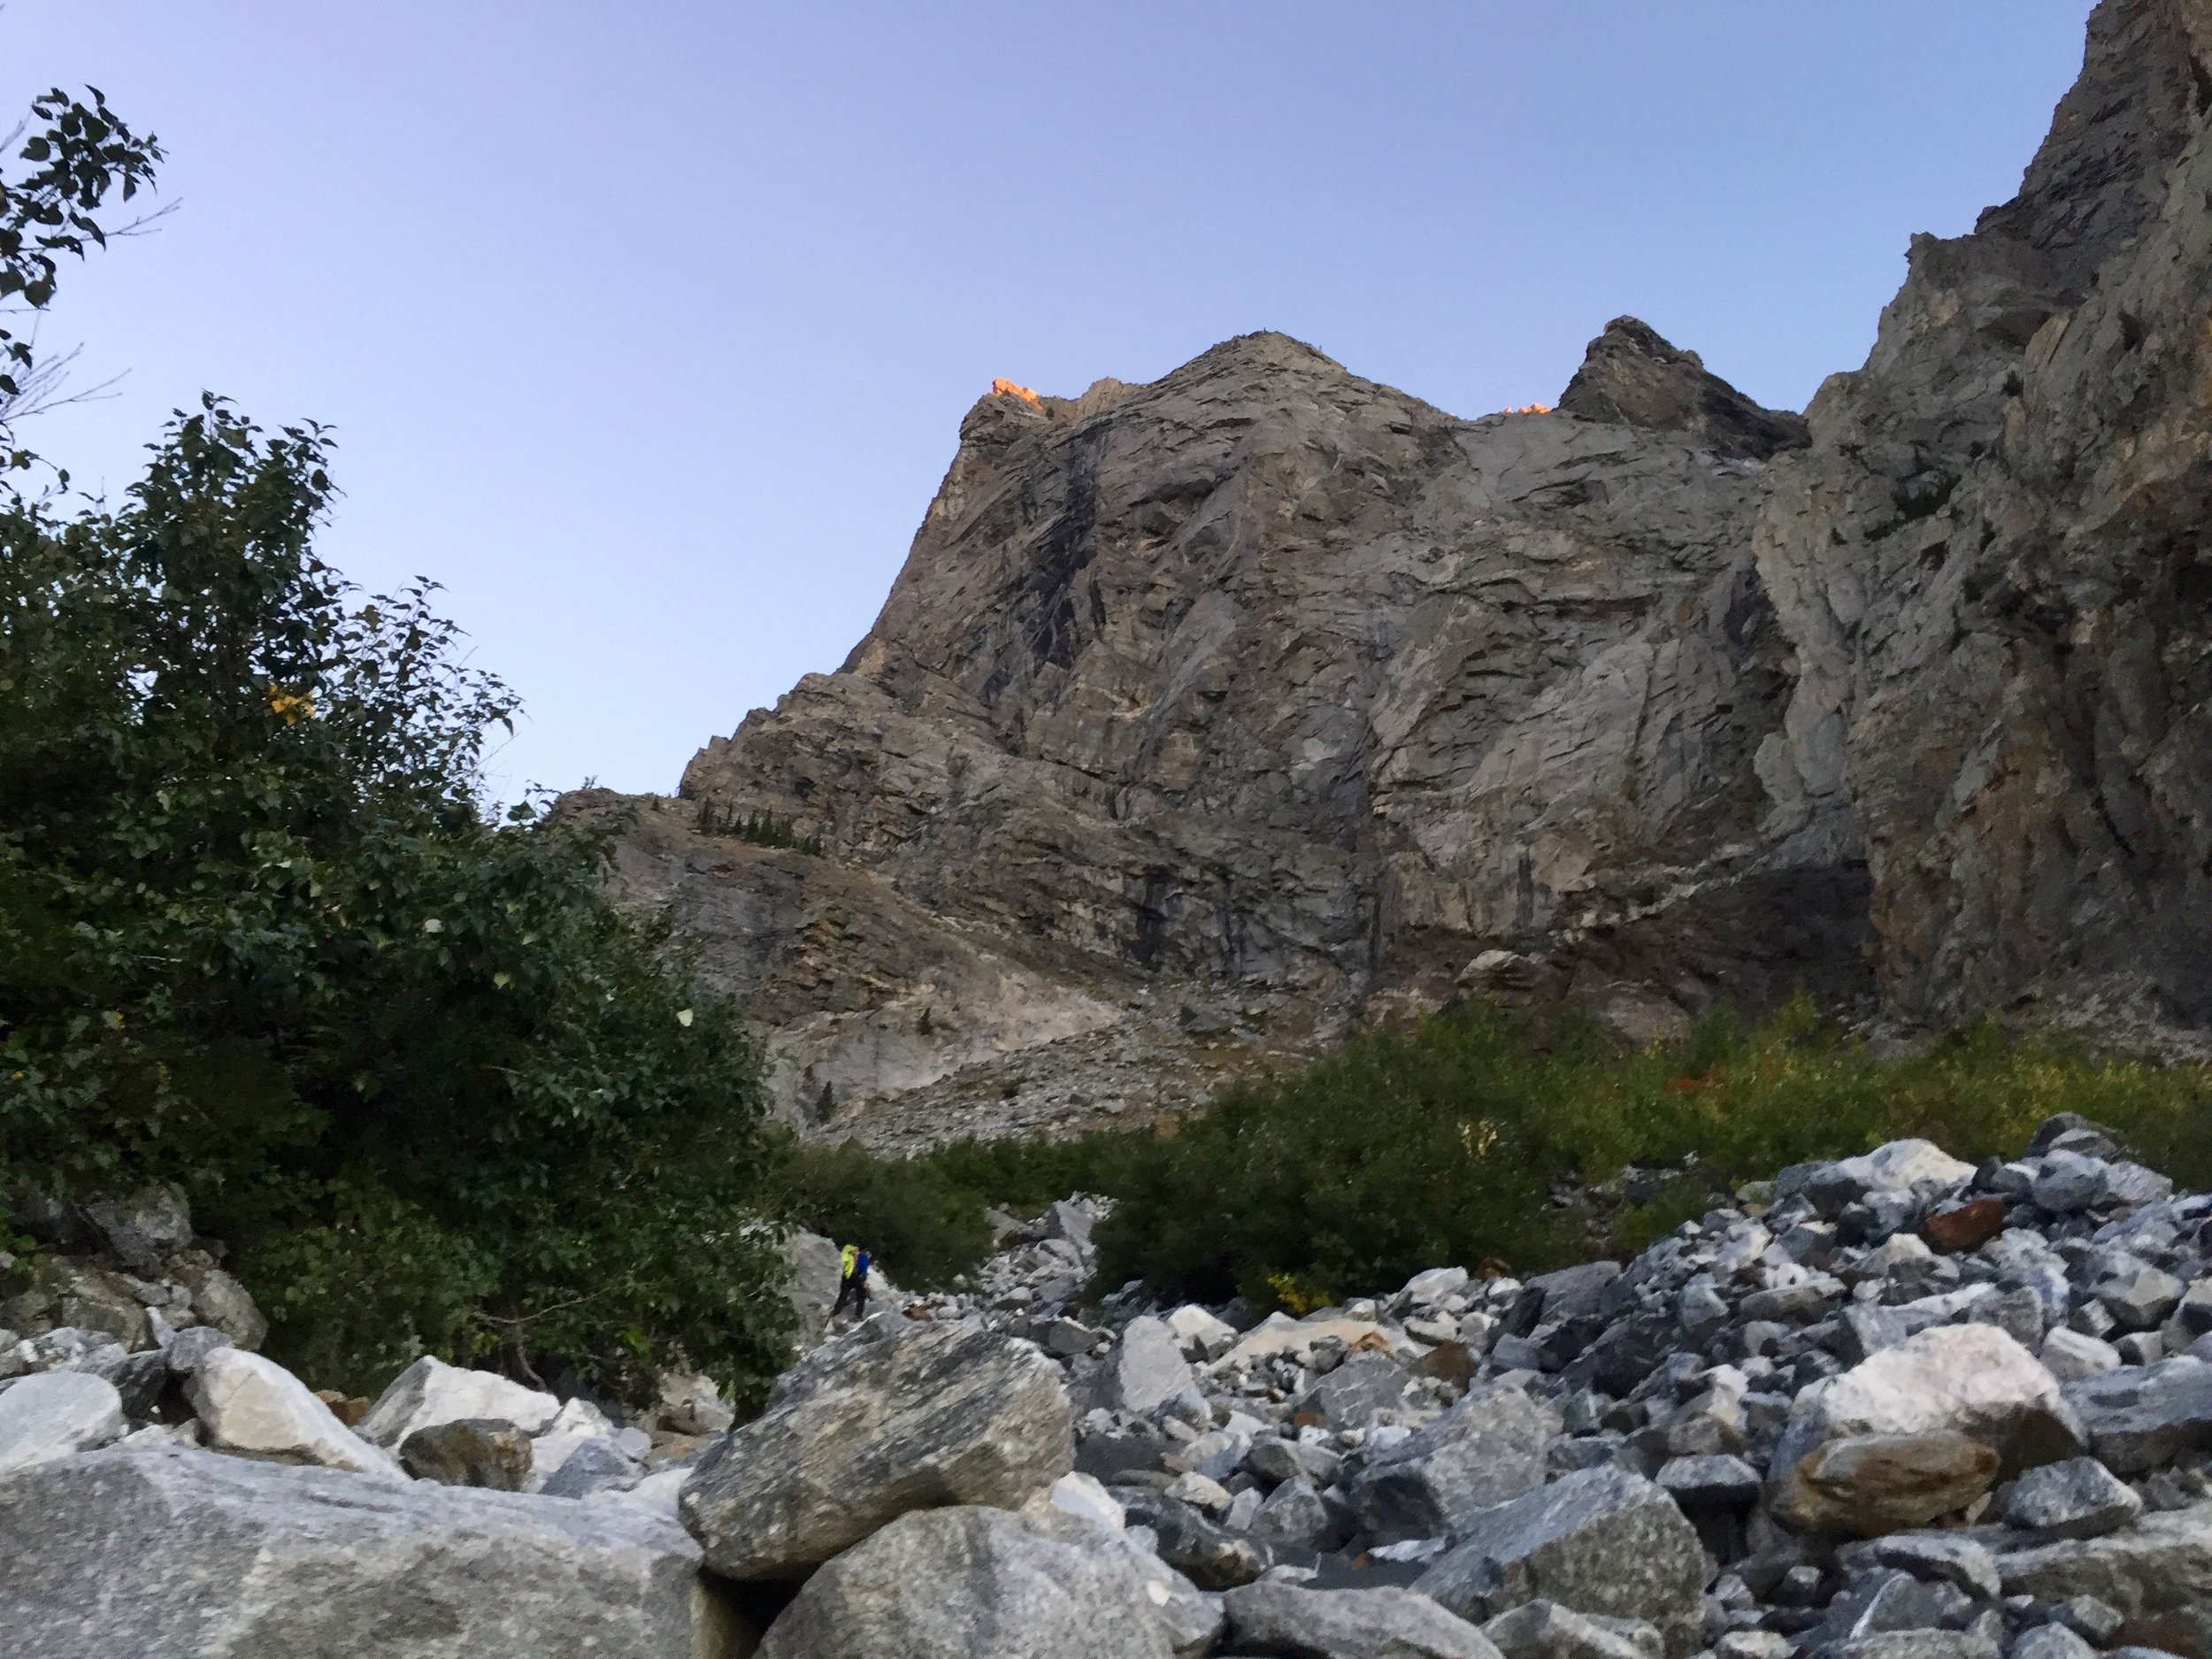 First light hitting the top of the buttress